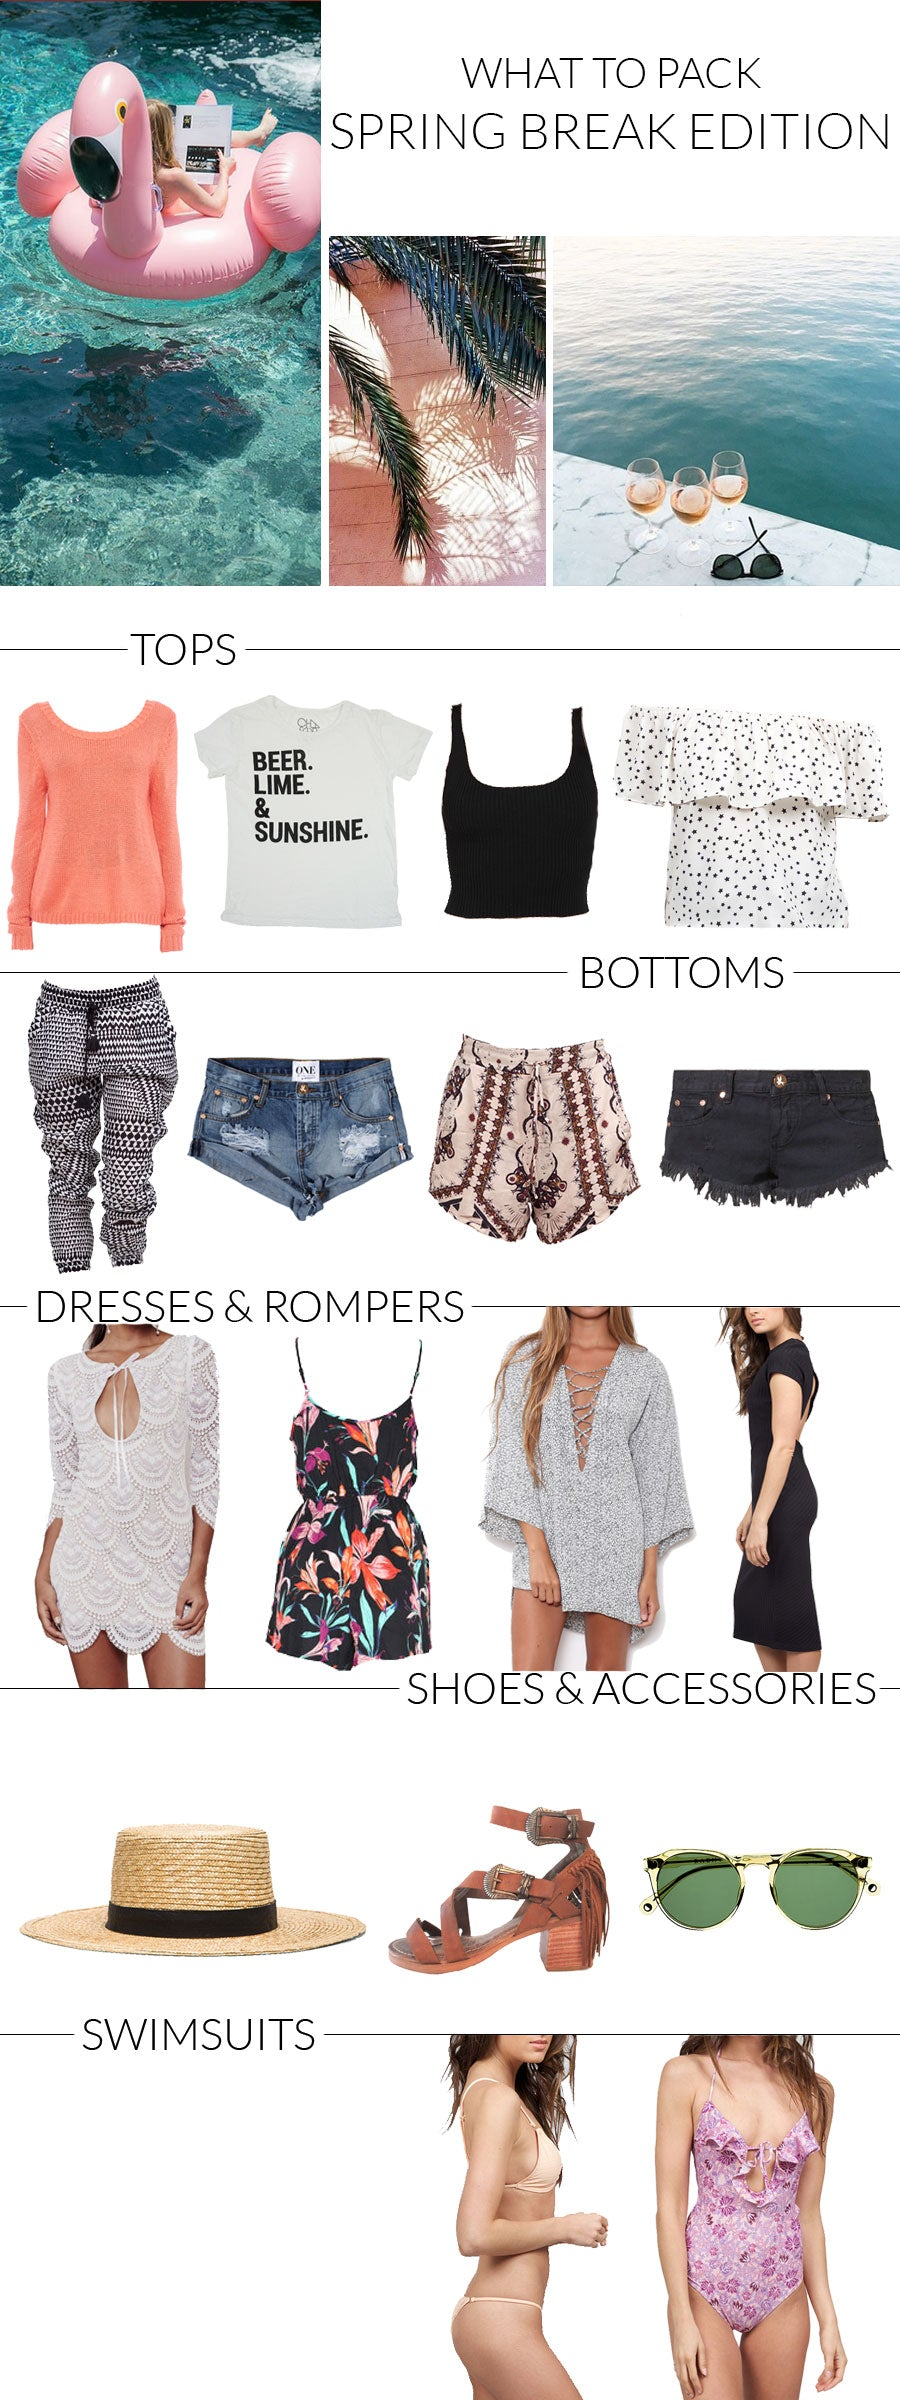 Spring Break Packing List, Boho Spring Break, What To Pack Mexico